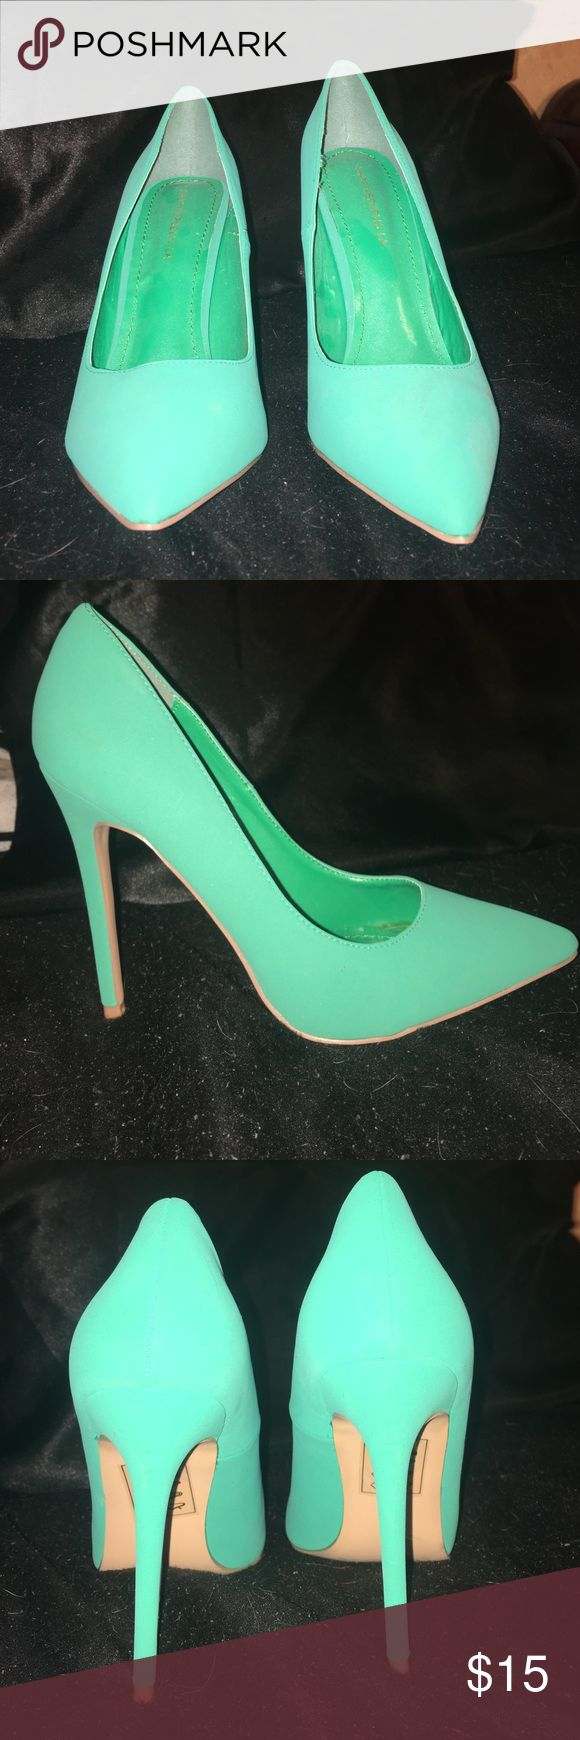 Teal high heels. Size 8.5 Teal high heels. Brand new and never worn. Pointed toe and slim heel. Perfect prom shoes! Shoes Heels